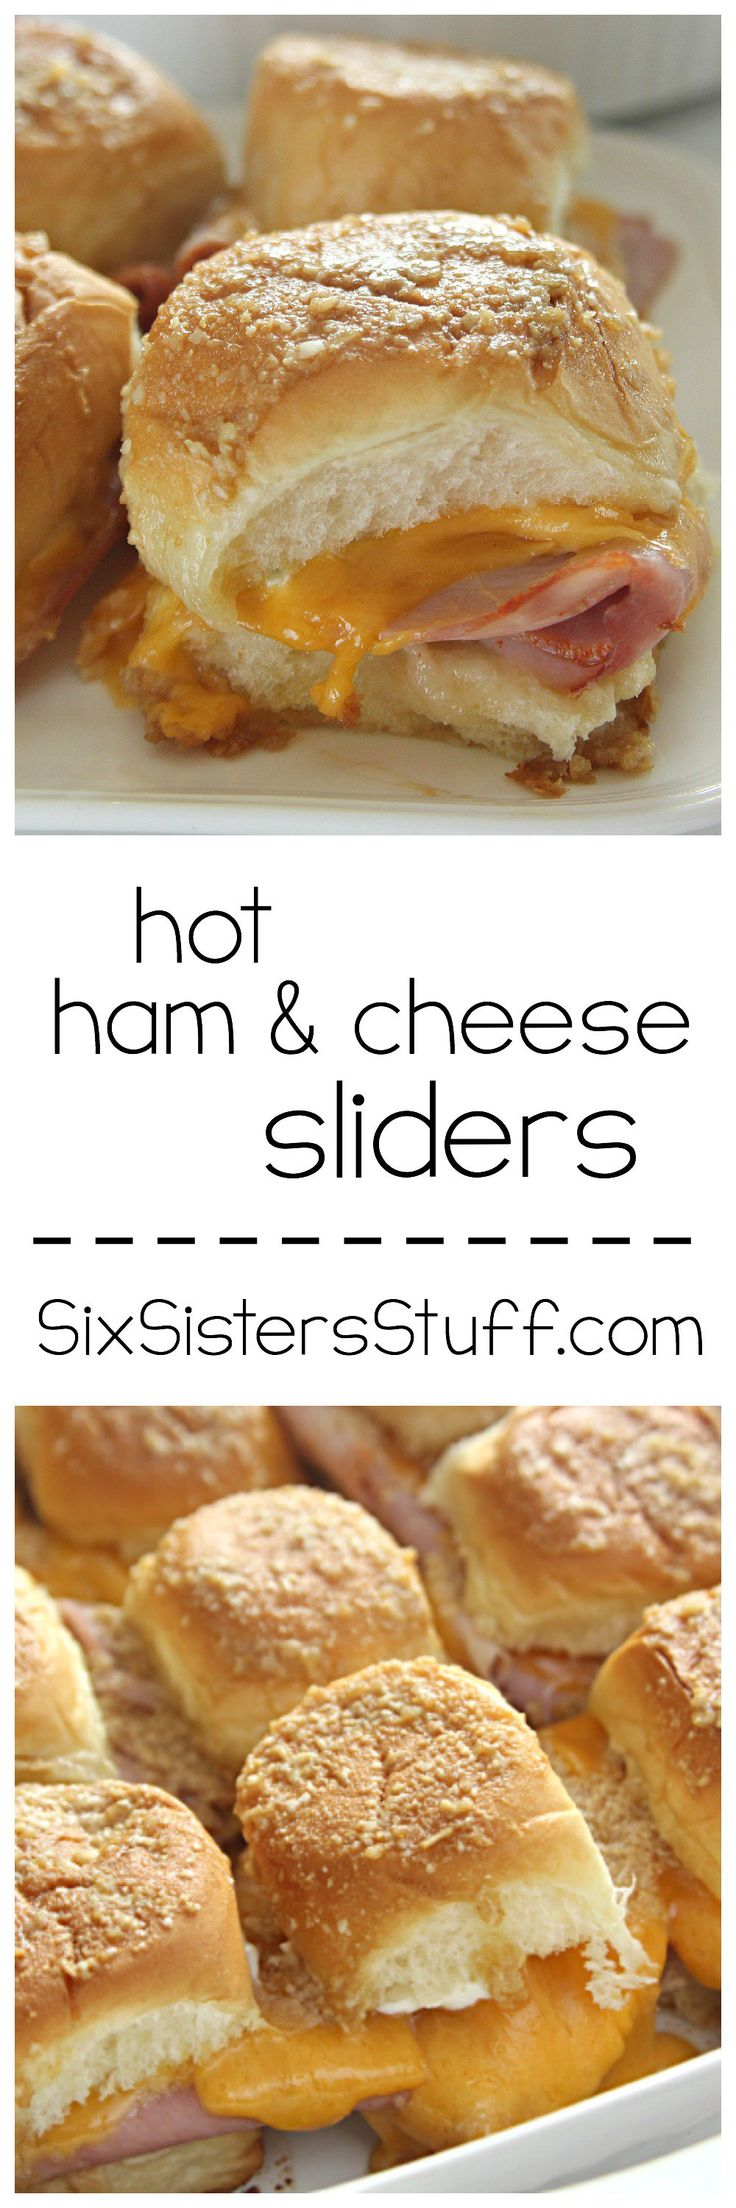 Hot Ham and Cheese Sliders Tailgate Sandwiches on SixSistersStuff.com